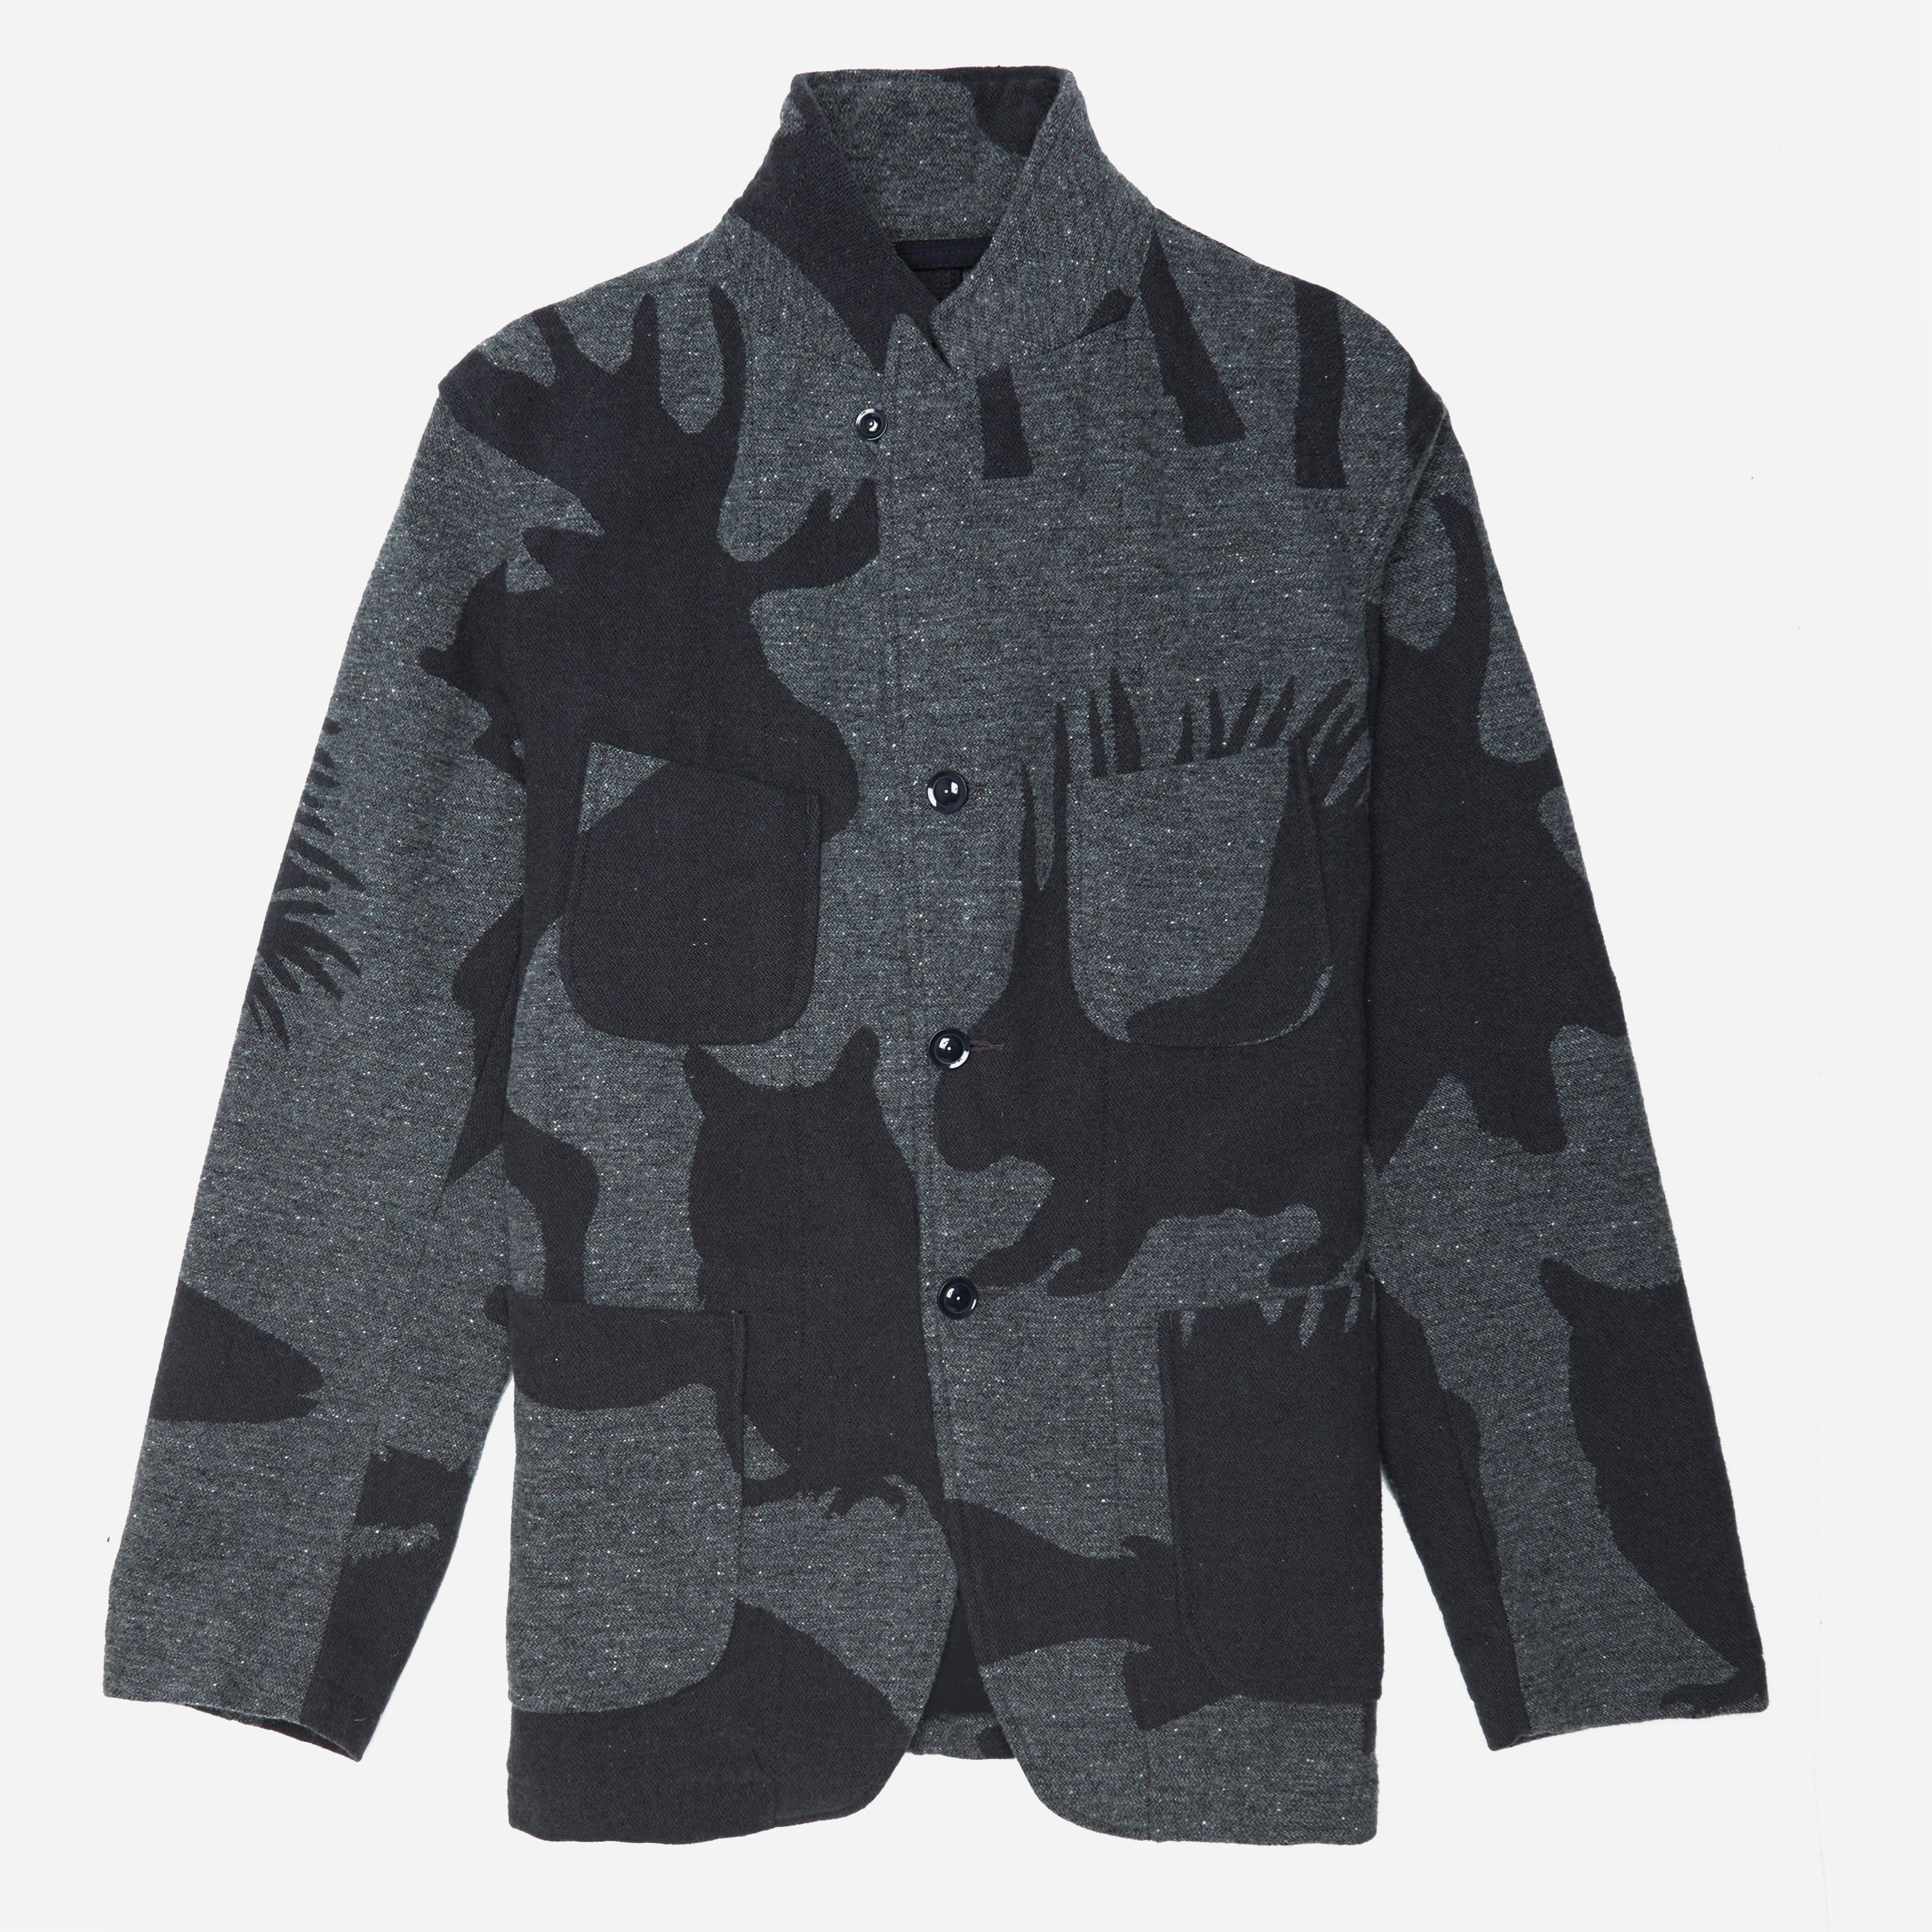 Engineered Garments Bedford Jacket - Animal Wool Jacquard